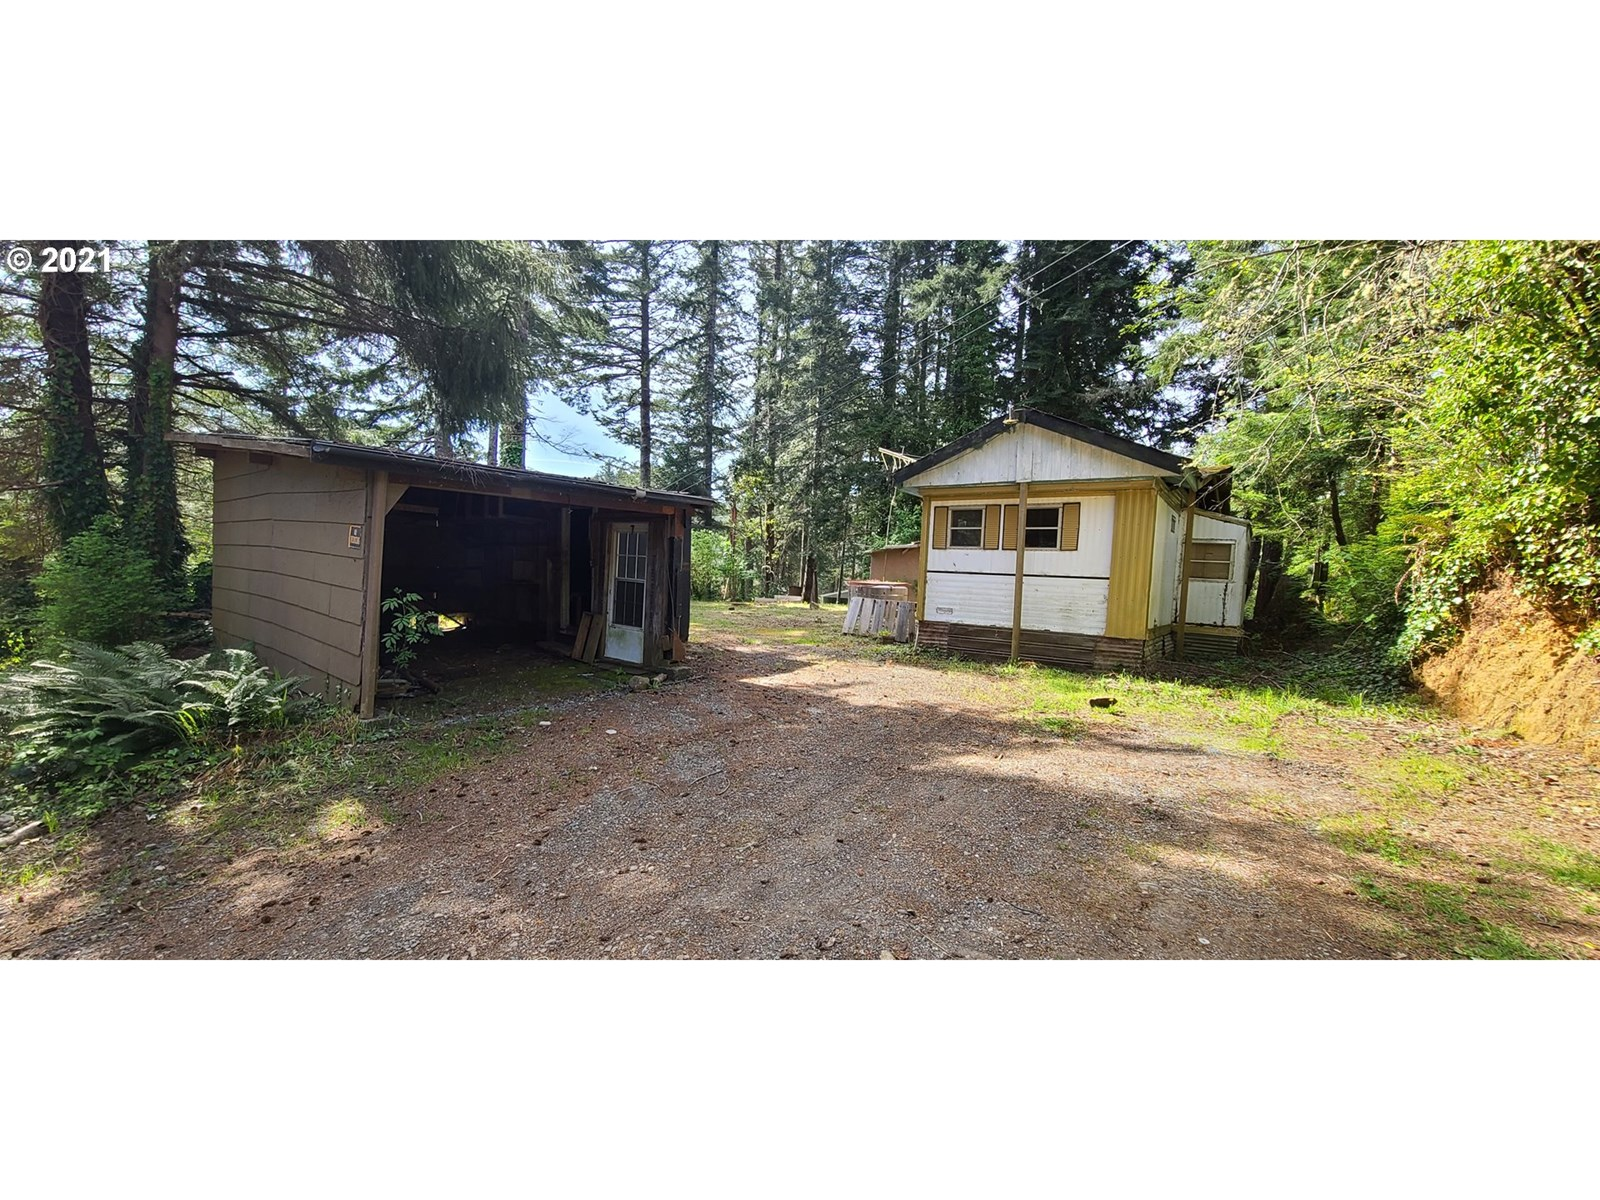 0.39 ACRE LOT FOR SALE 5 MINUTES FROM GOLD BEACH, OR 97444